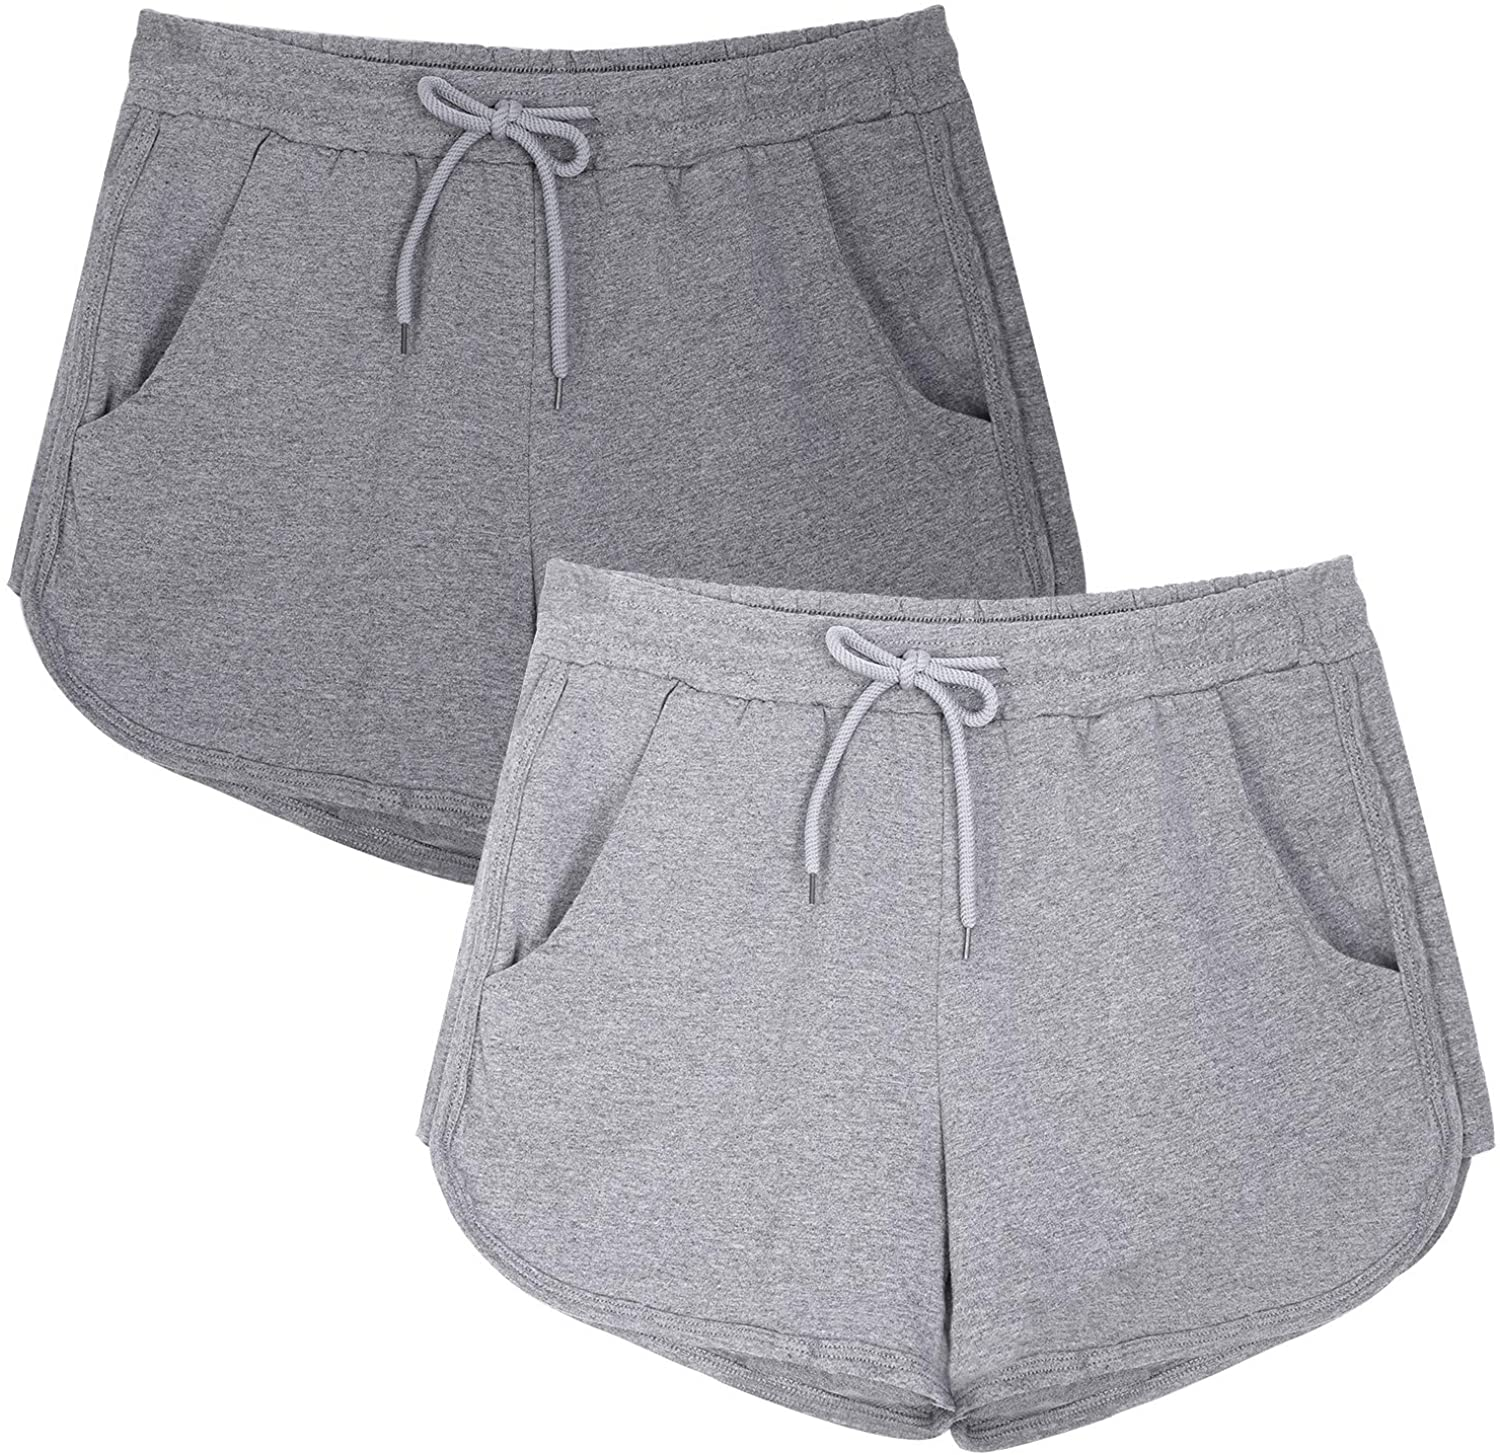 URATOT 2 Pack Casual Short Pants Athletic Shorts Elastic Waist Workout Shorts with Pockets